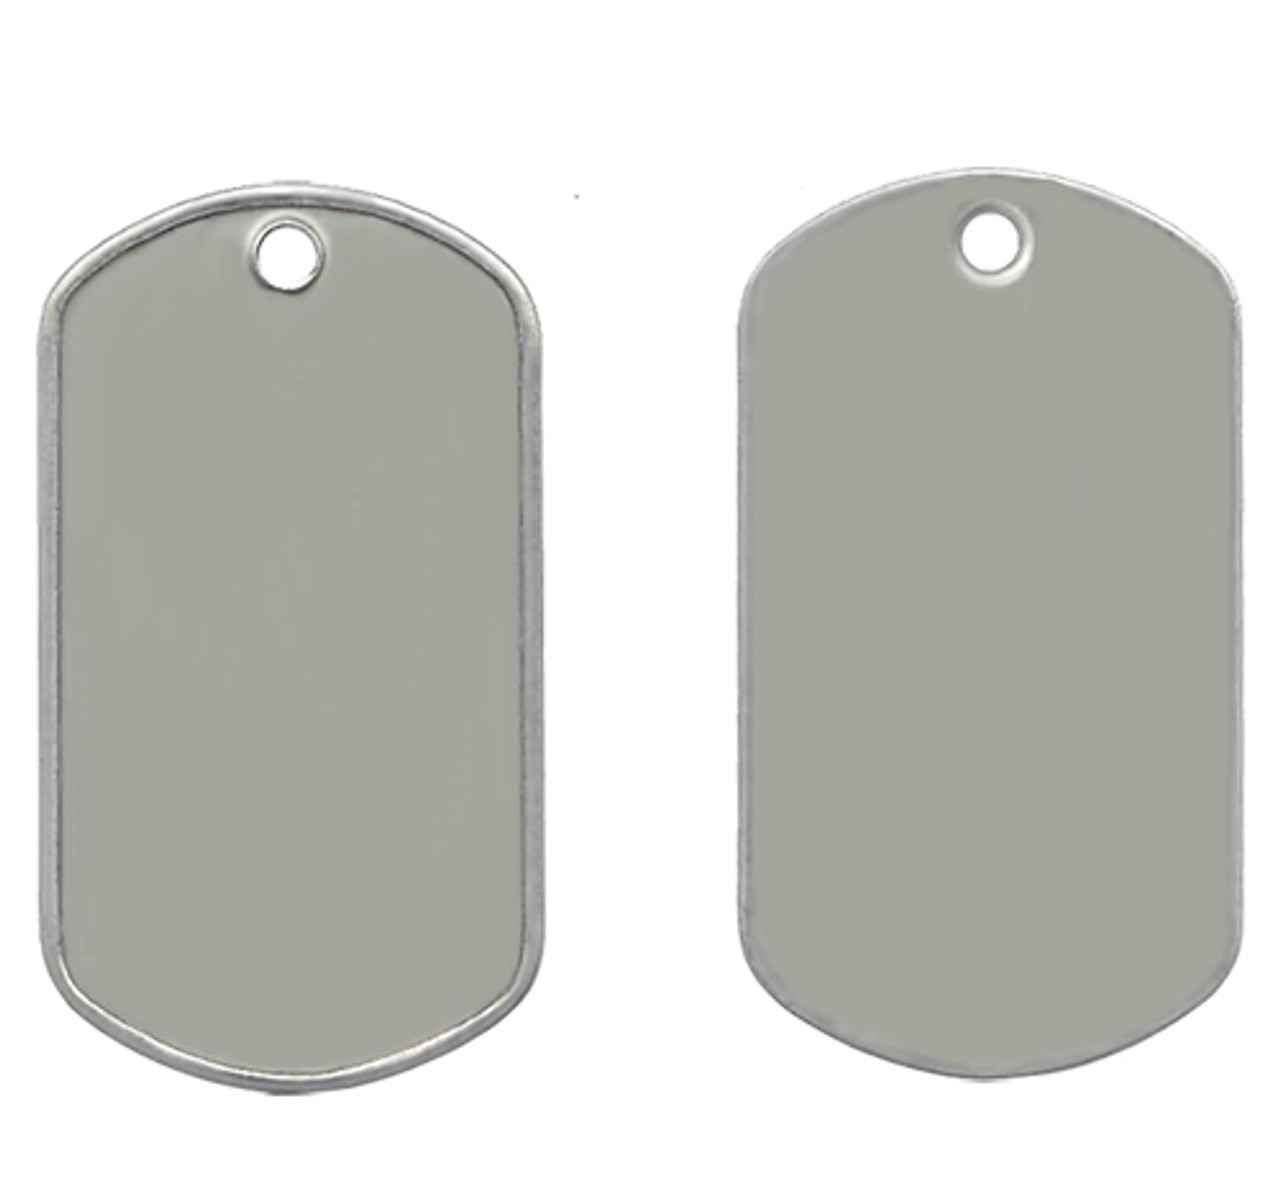 Front and back picture of the blank matte stainless steel dog tags. These dog tags are made of 100% durable stainless steel and are similar to the ones worn by the United States military and other armed forces around the world.